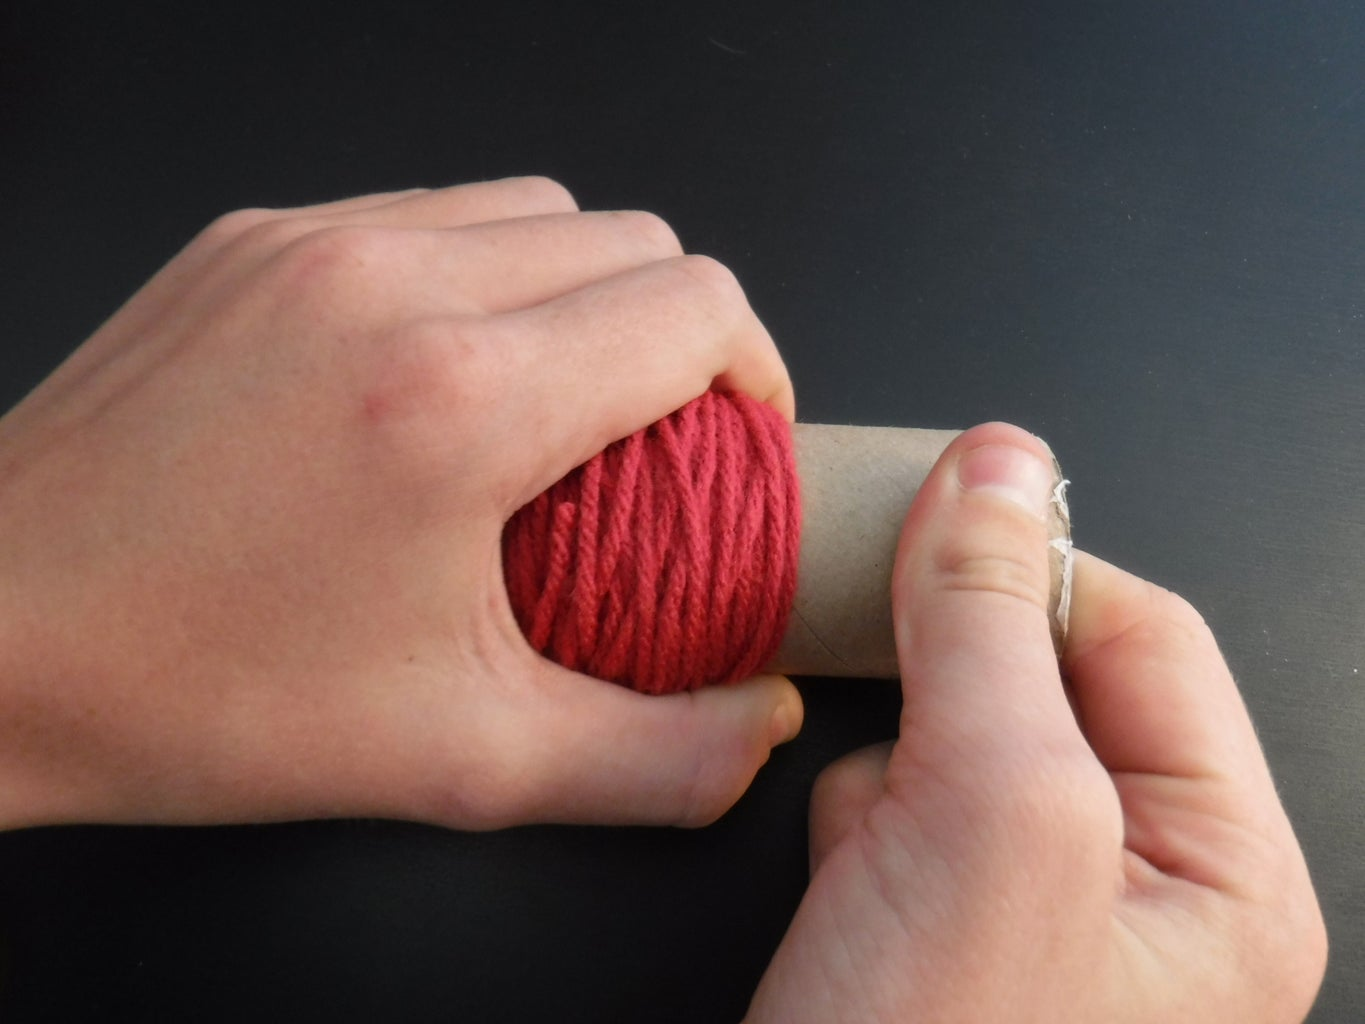 Removing Yarn From Guide